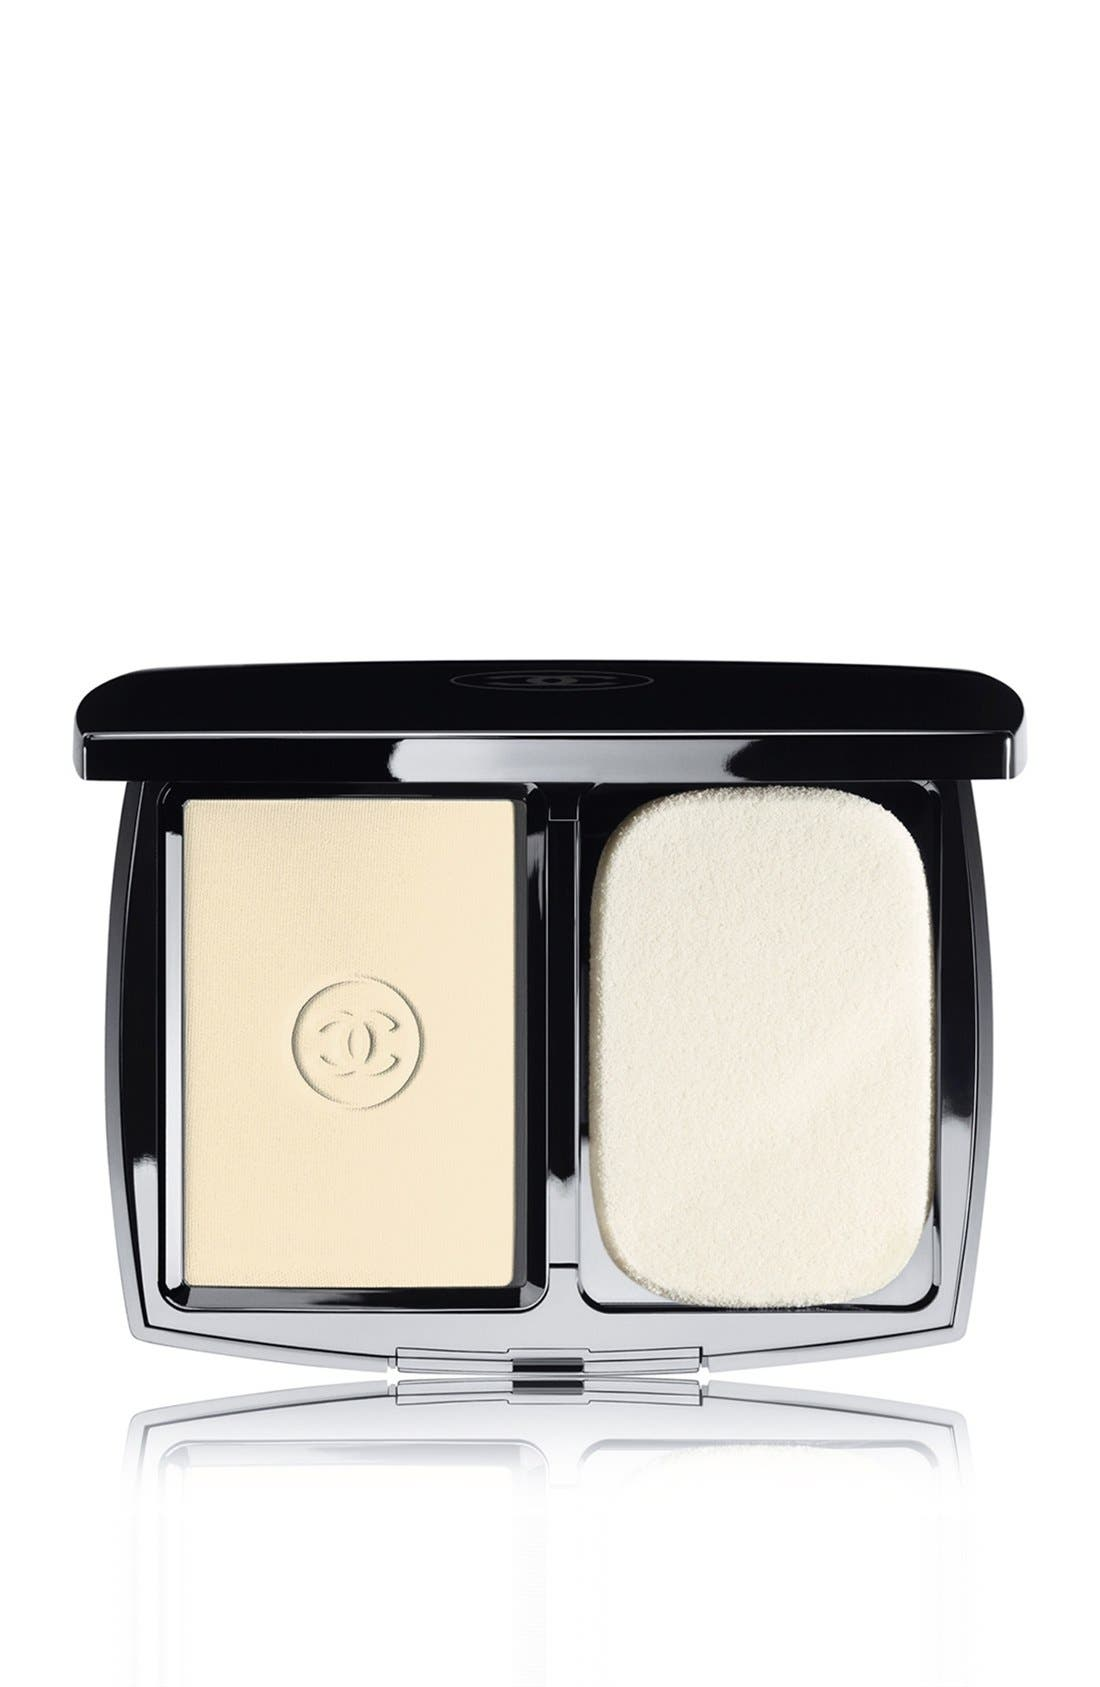 DOUBLE PERFECTION LUMIÈRE<br />Long-Wear Flawless Sunscreen Powder Makeup Broad Spectrum SPF 15,                             Main thumbnail 8, color,